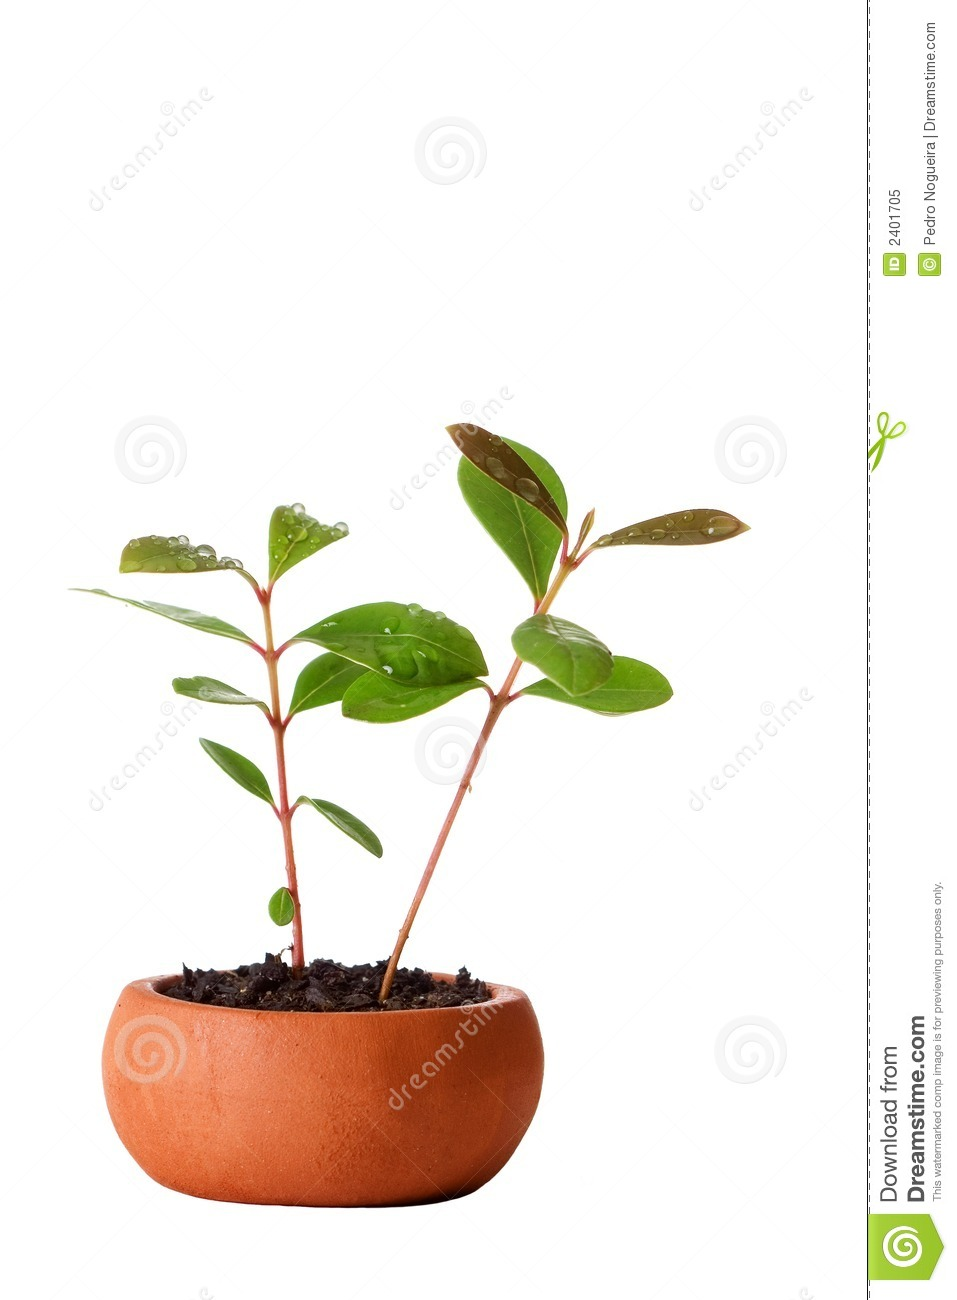 Vase_and_plant